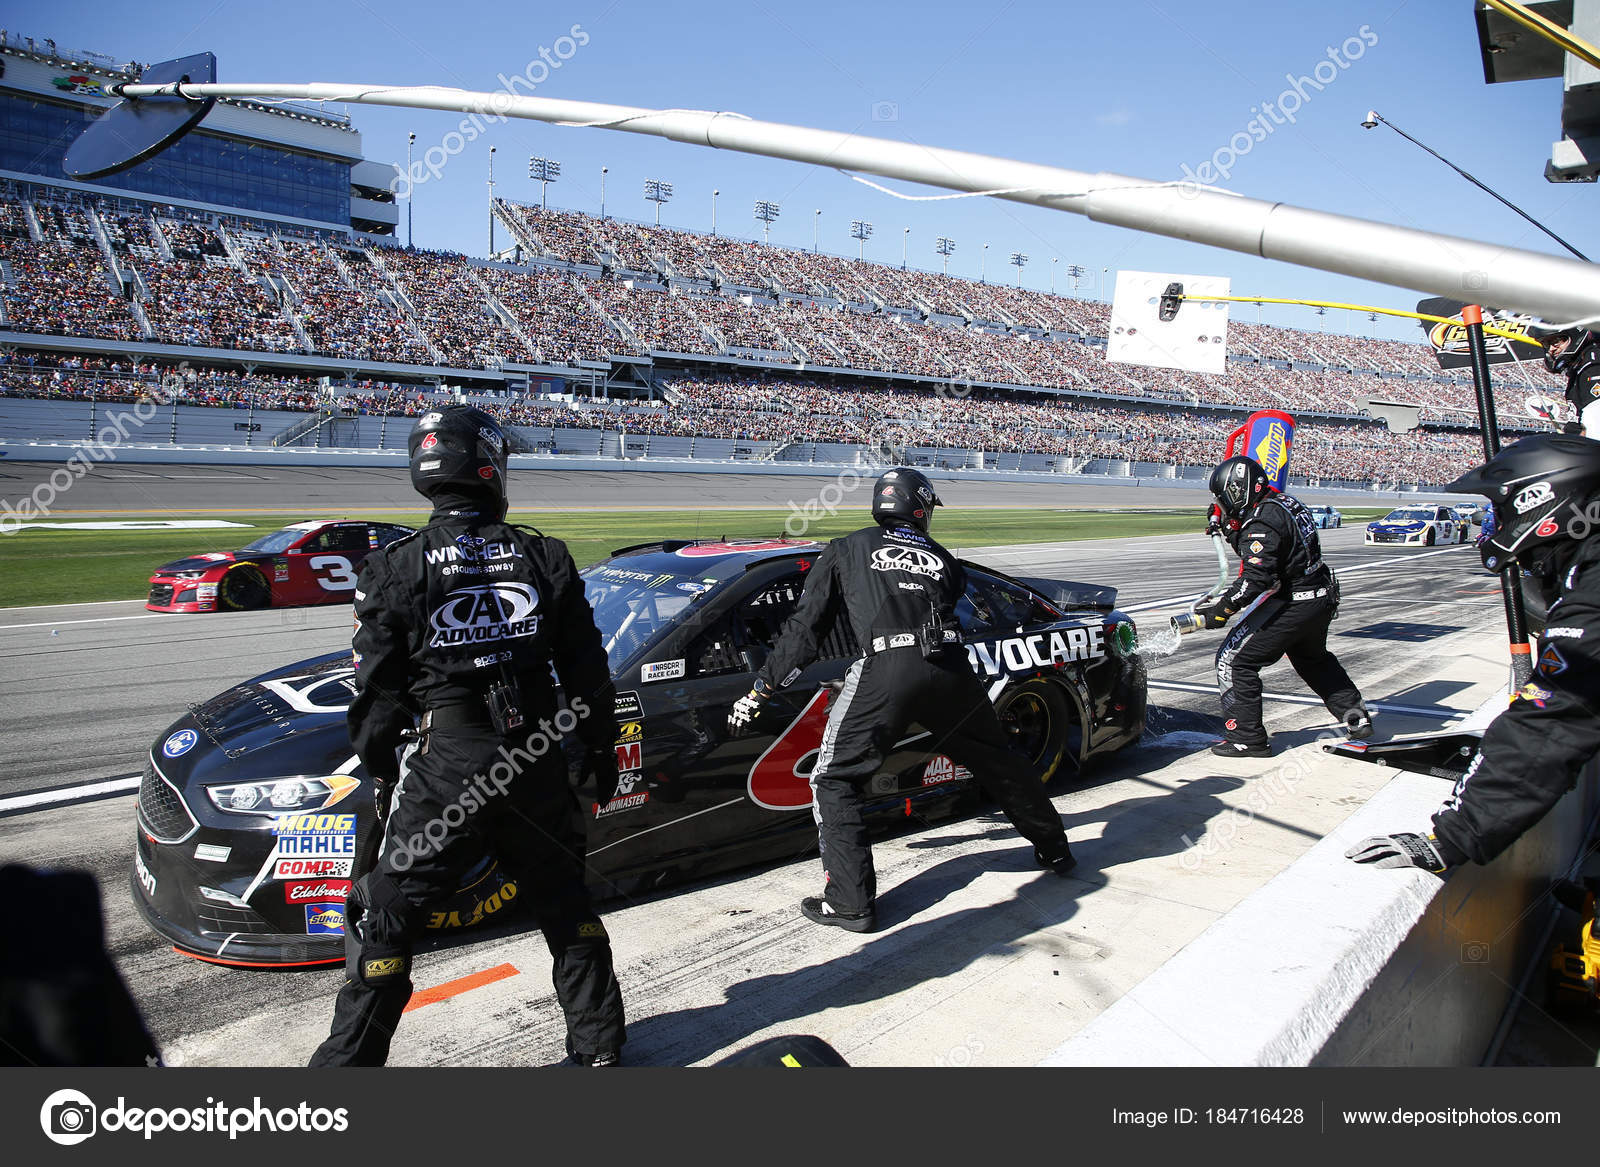 Daytona Dog Track >> Nascar February 18 Daytona 500 Stock Editorial Photo